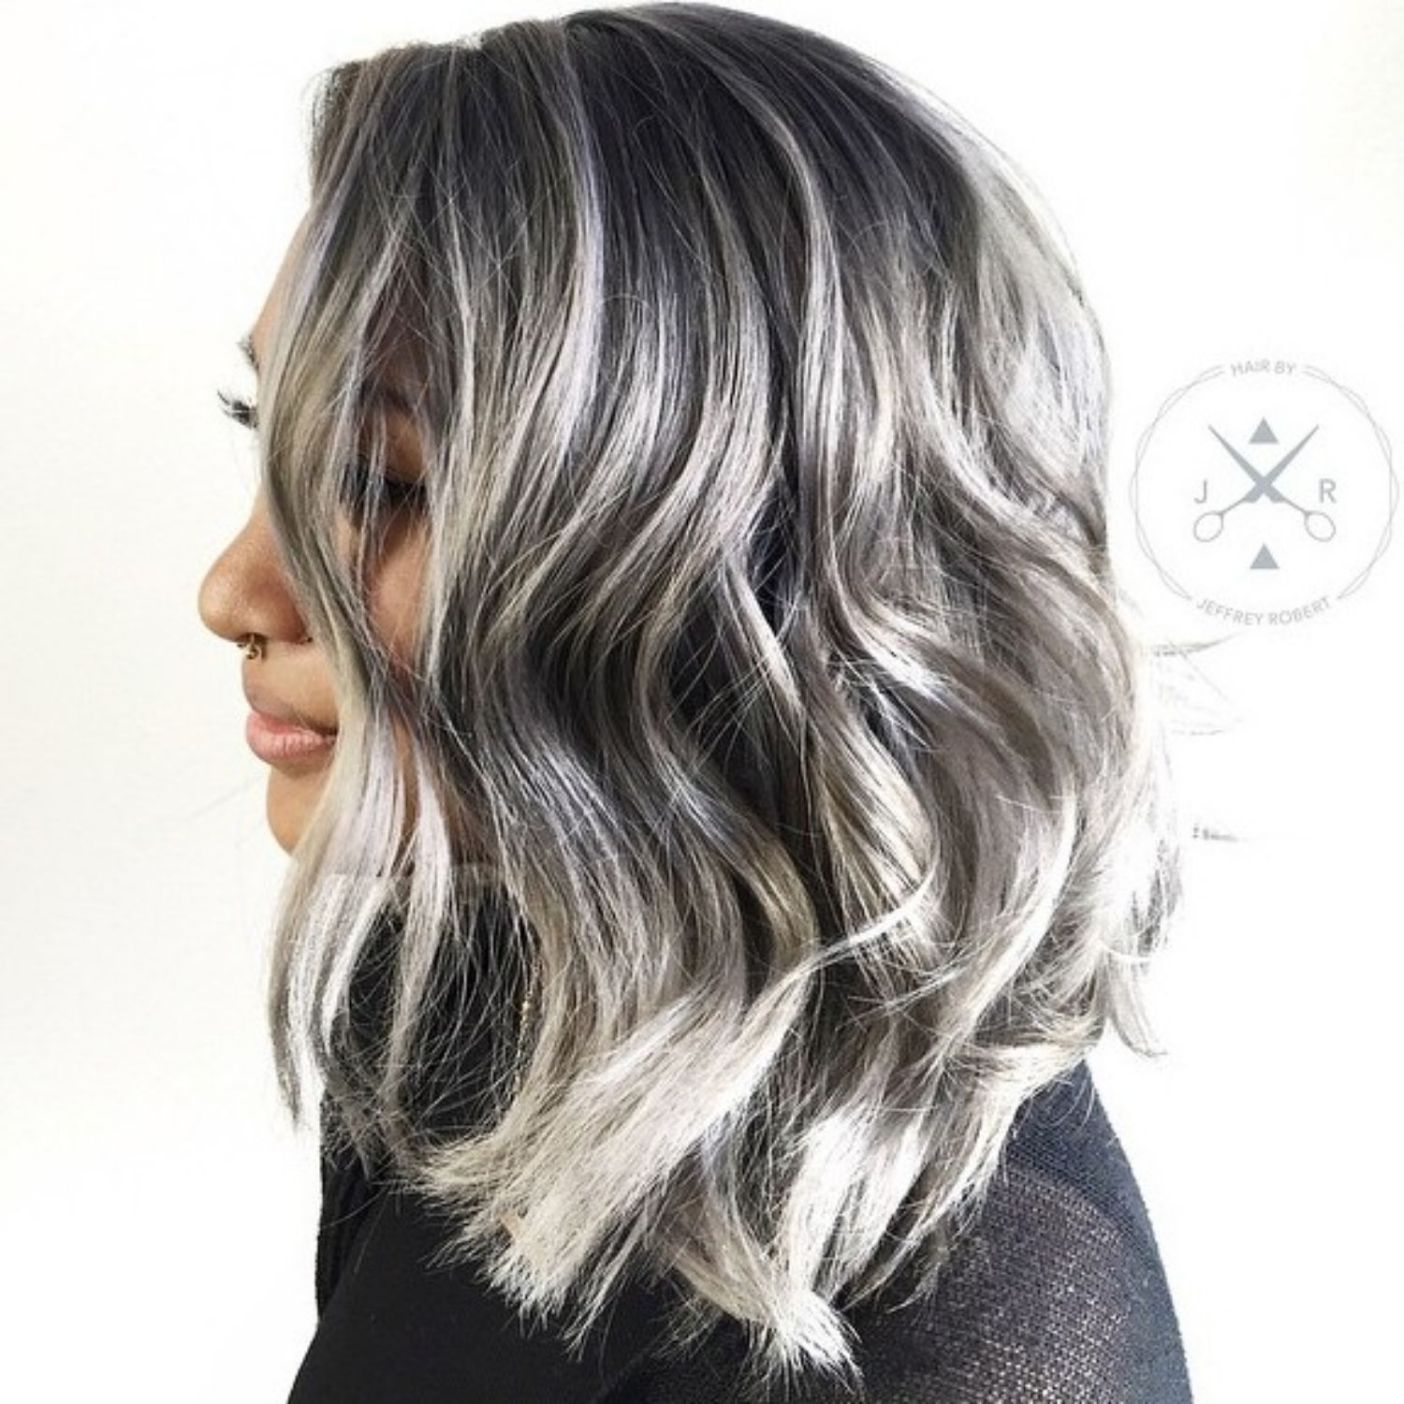 60 Shades Of Grey Silver And White Highlights For Eternal Youth Metallic Hair Hair Shades Black Hair With Highlights